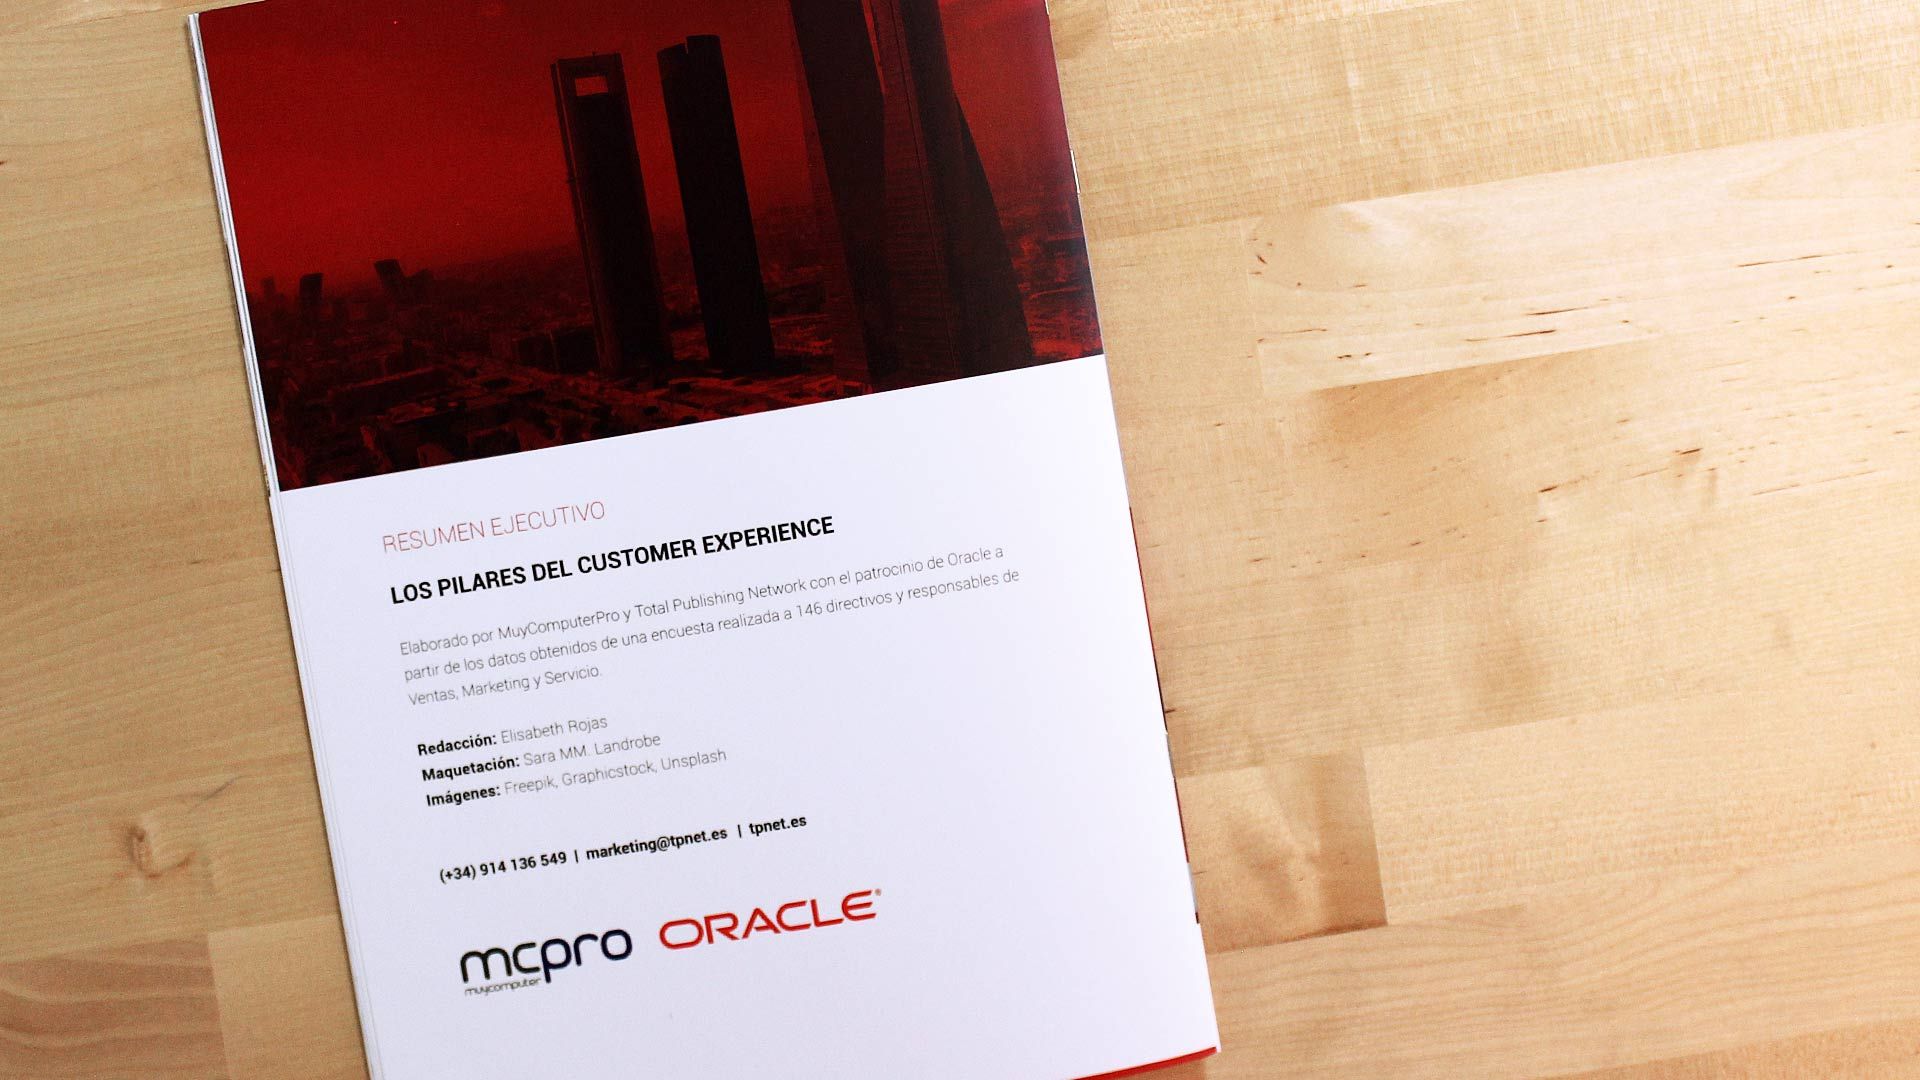 oracle-content-marketing-pilares-customer-experience-2017-13